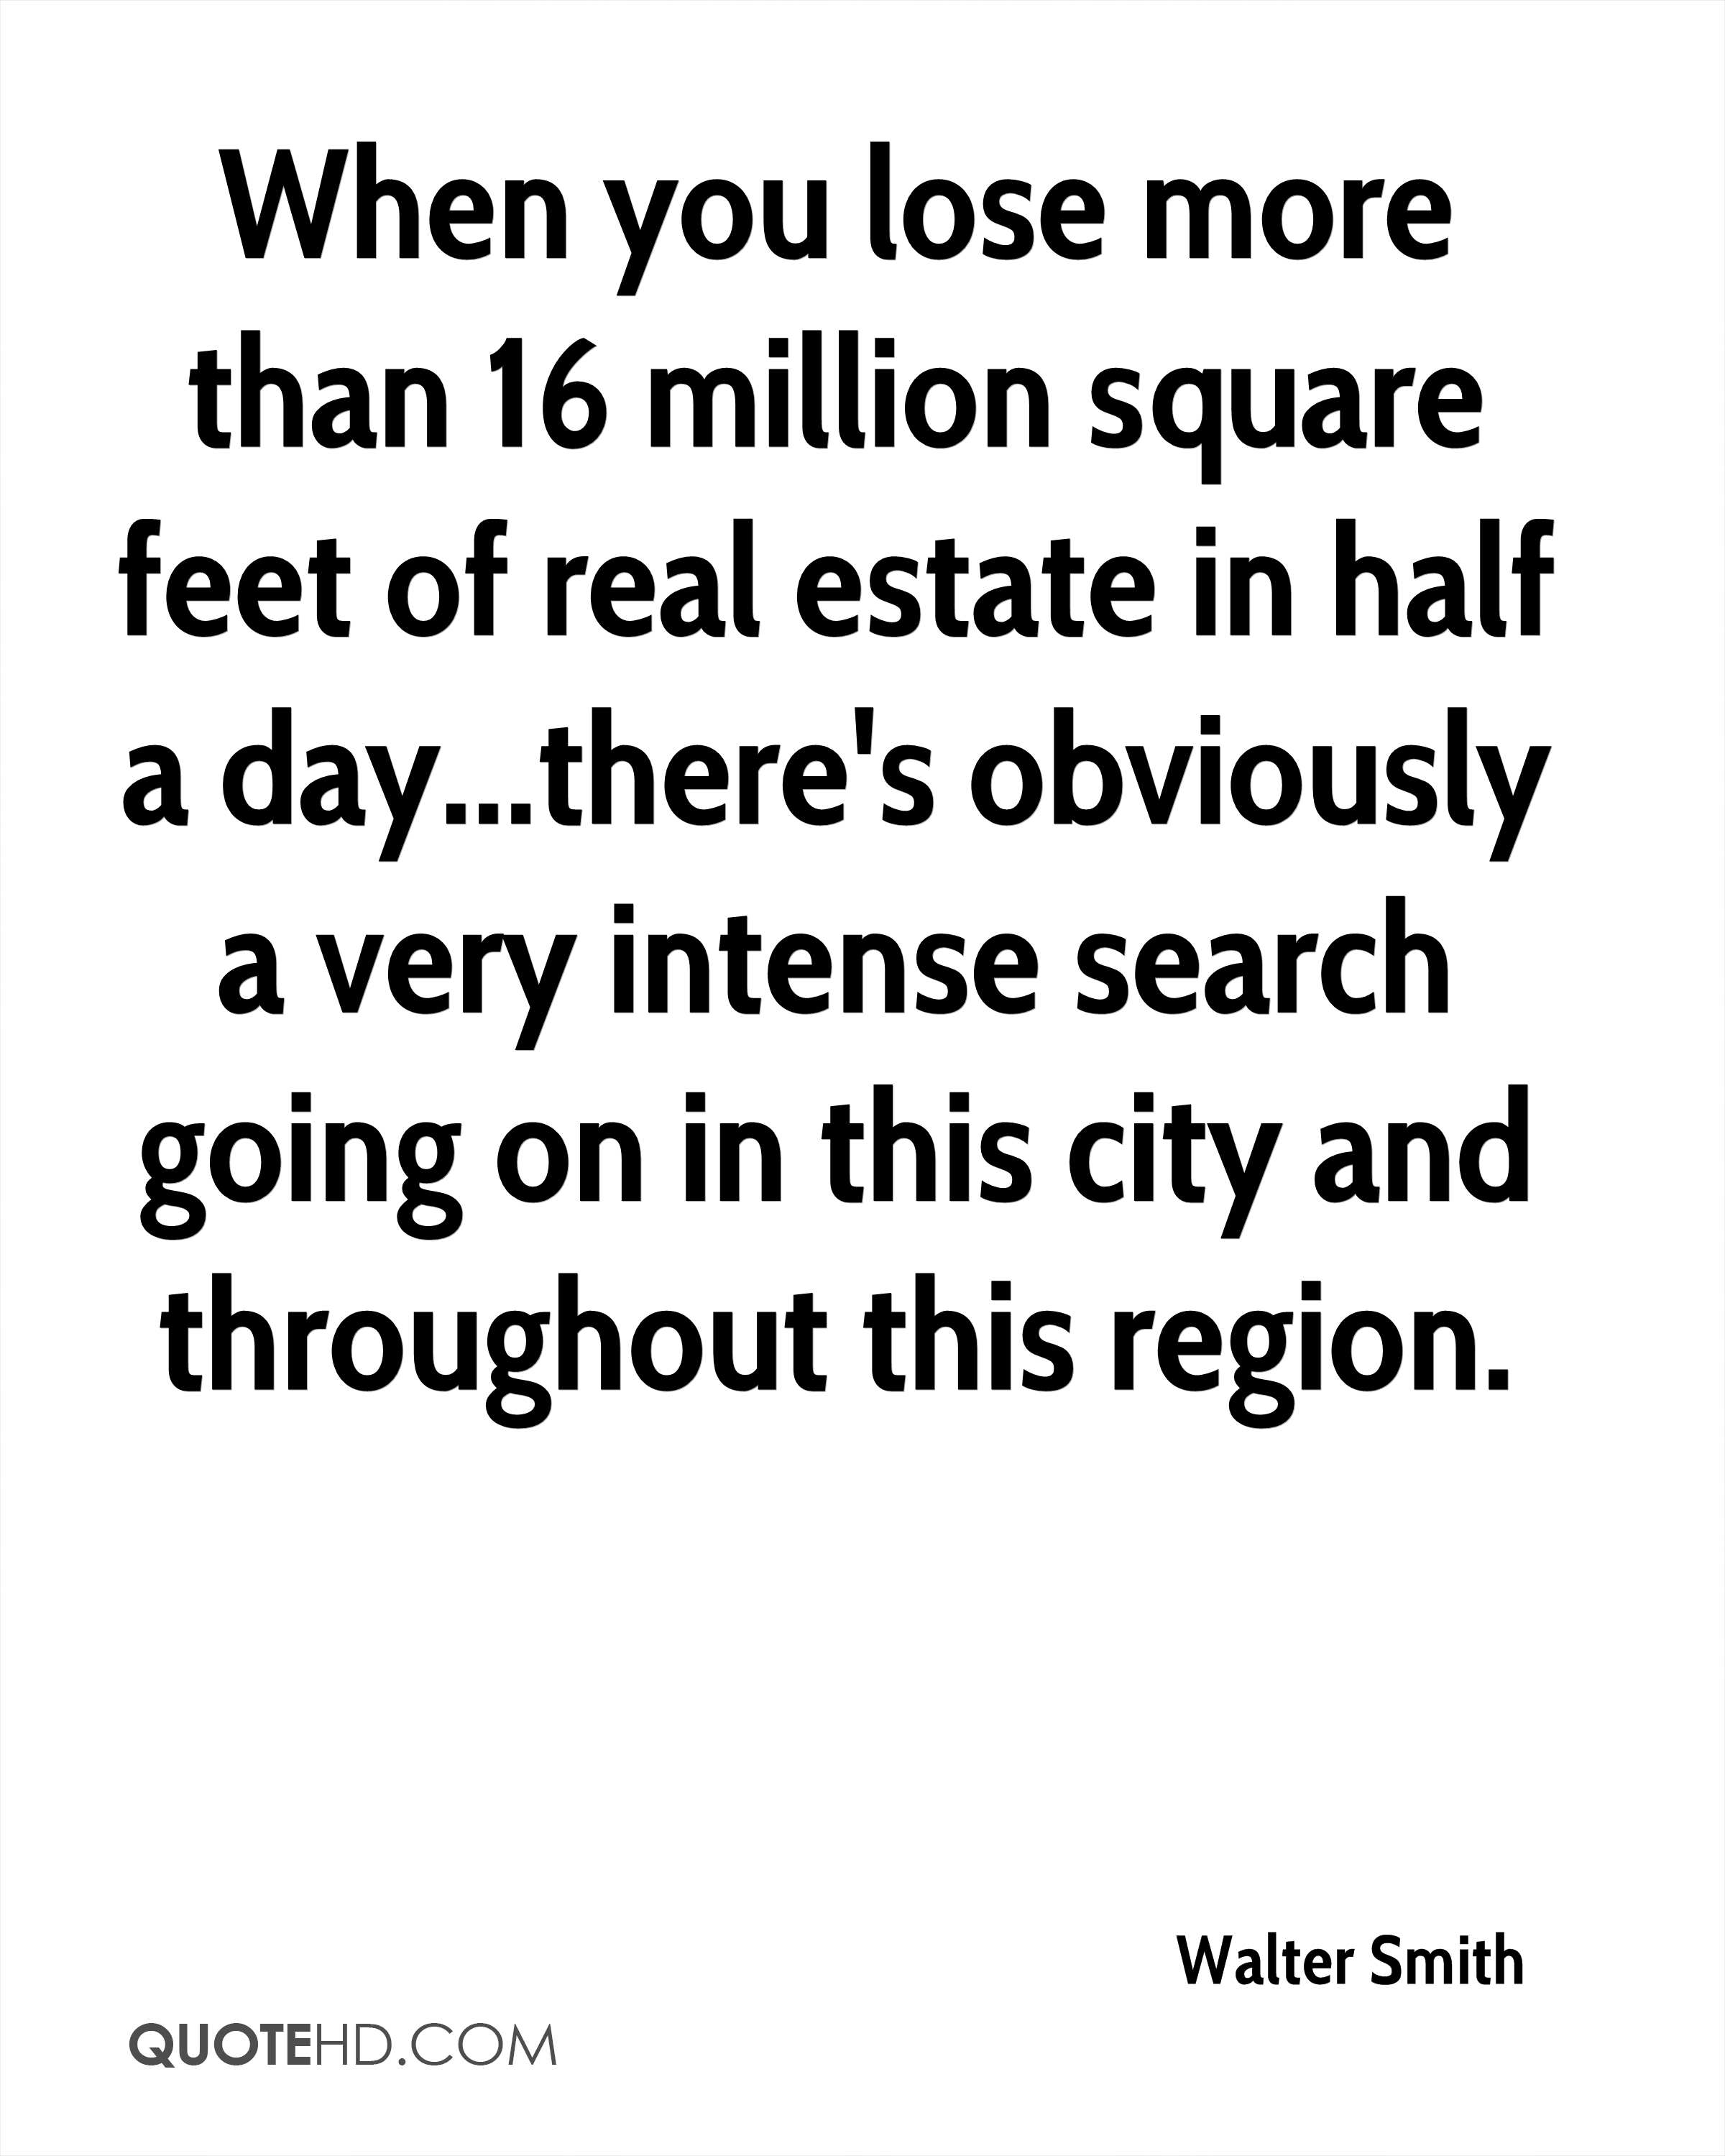 When you lose more than 16 million square feet of real estate in half a day...there's obviously a very intense search going on in this city and throughout this region.